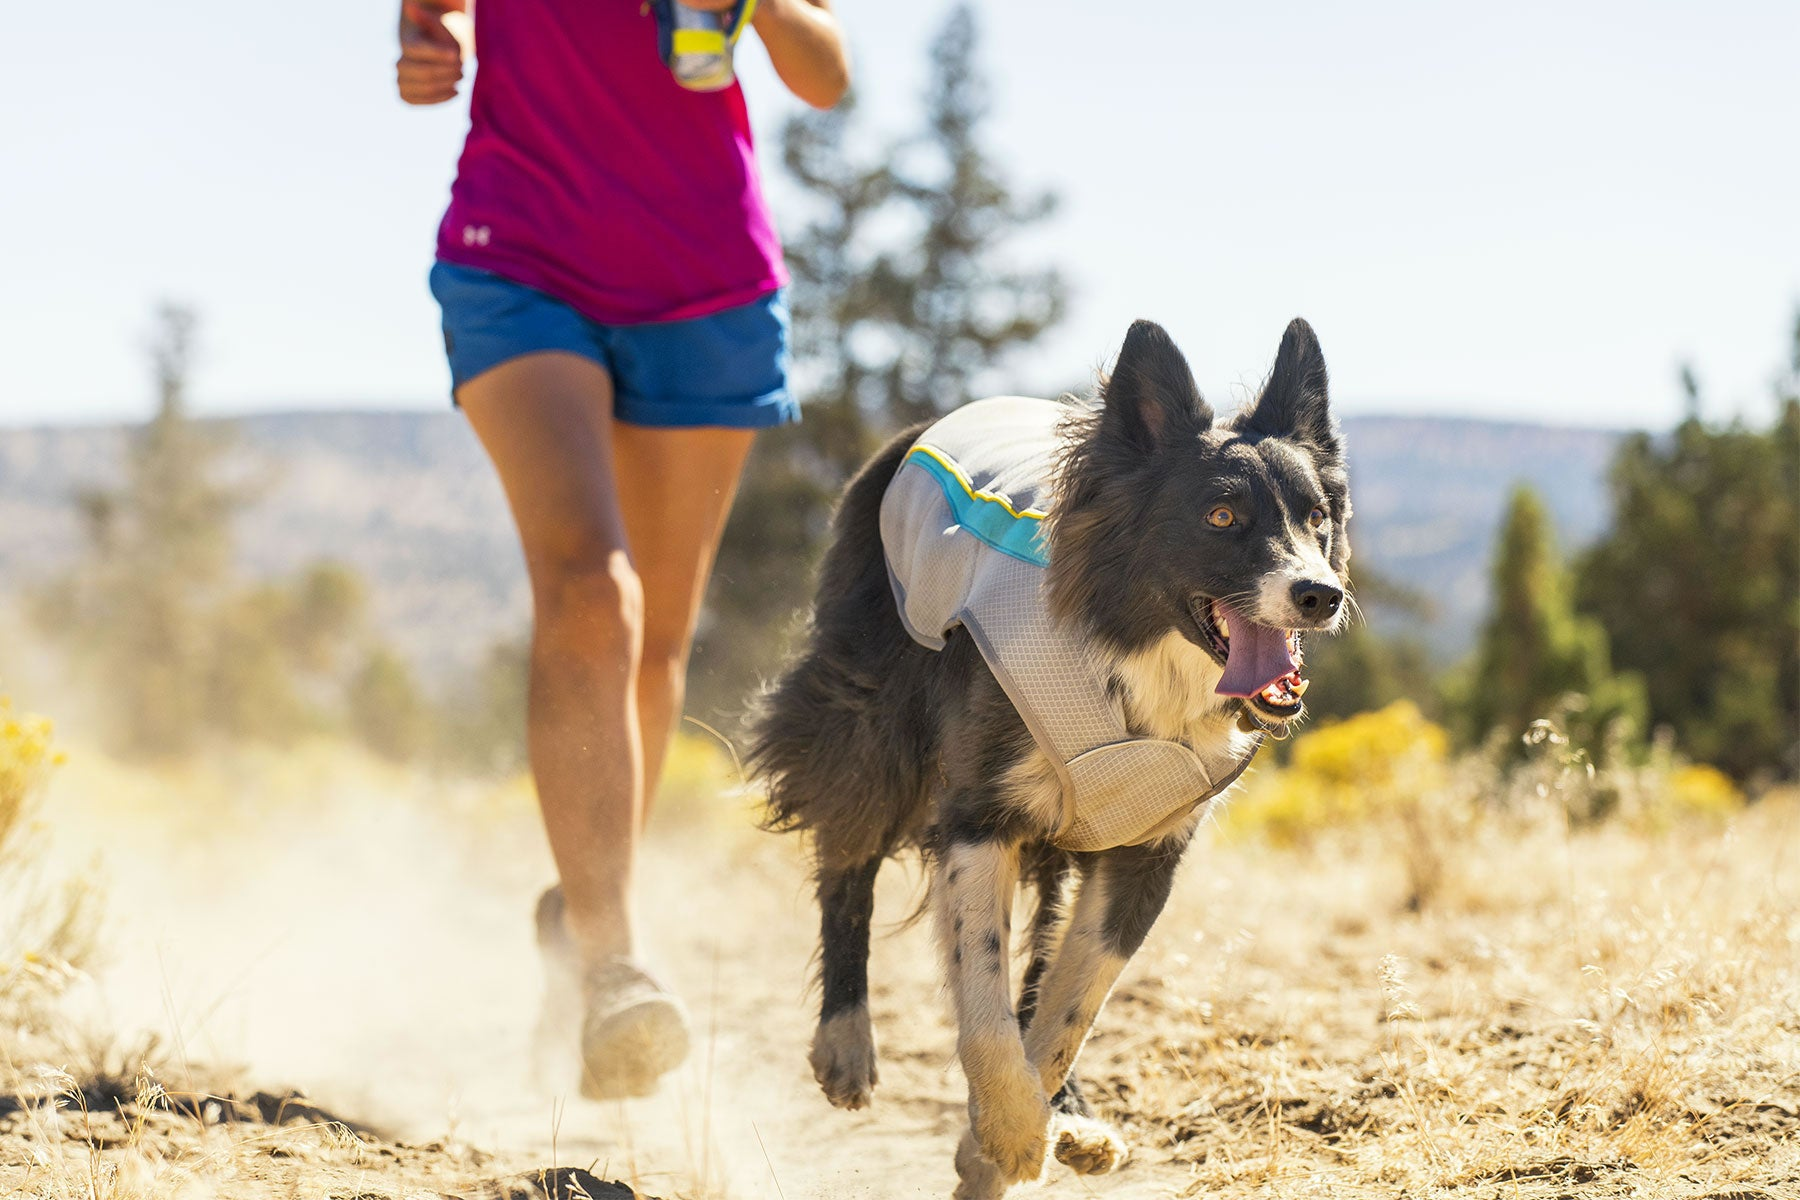 Read How To Trail Run With Your Dog